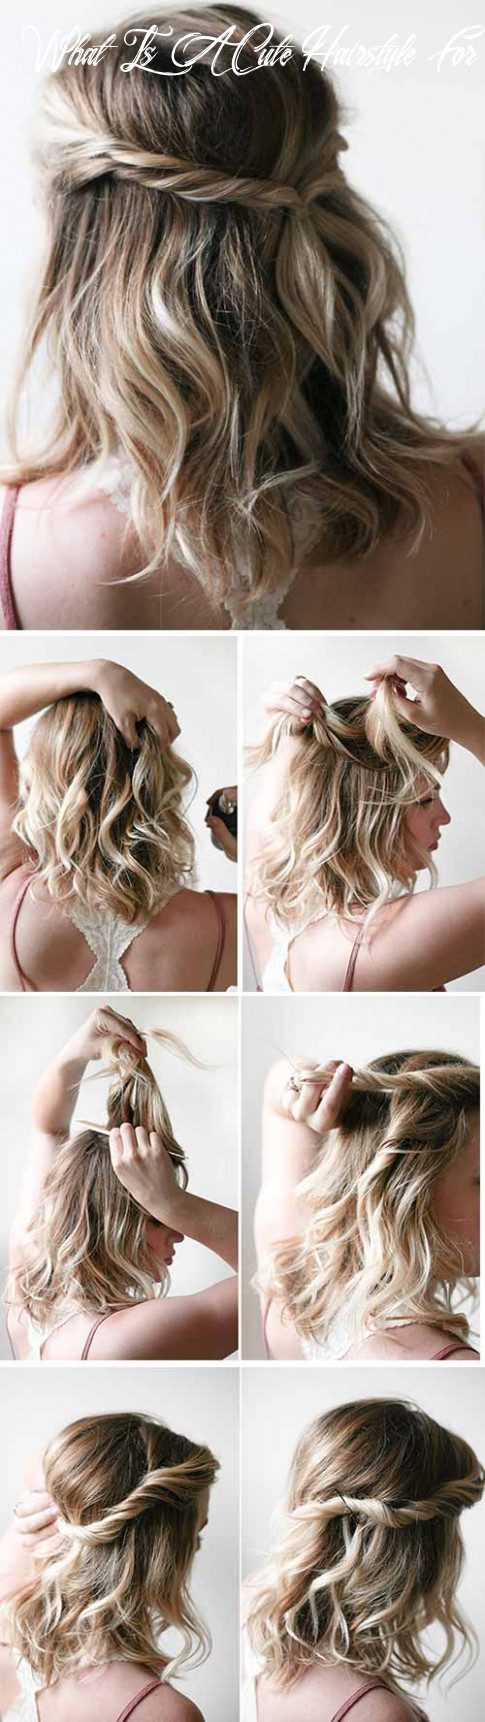 10 incredible diy short hairstyles a step by step guide what is a cute hairstyle for short hair